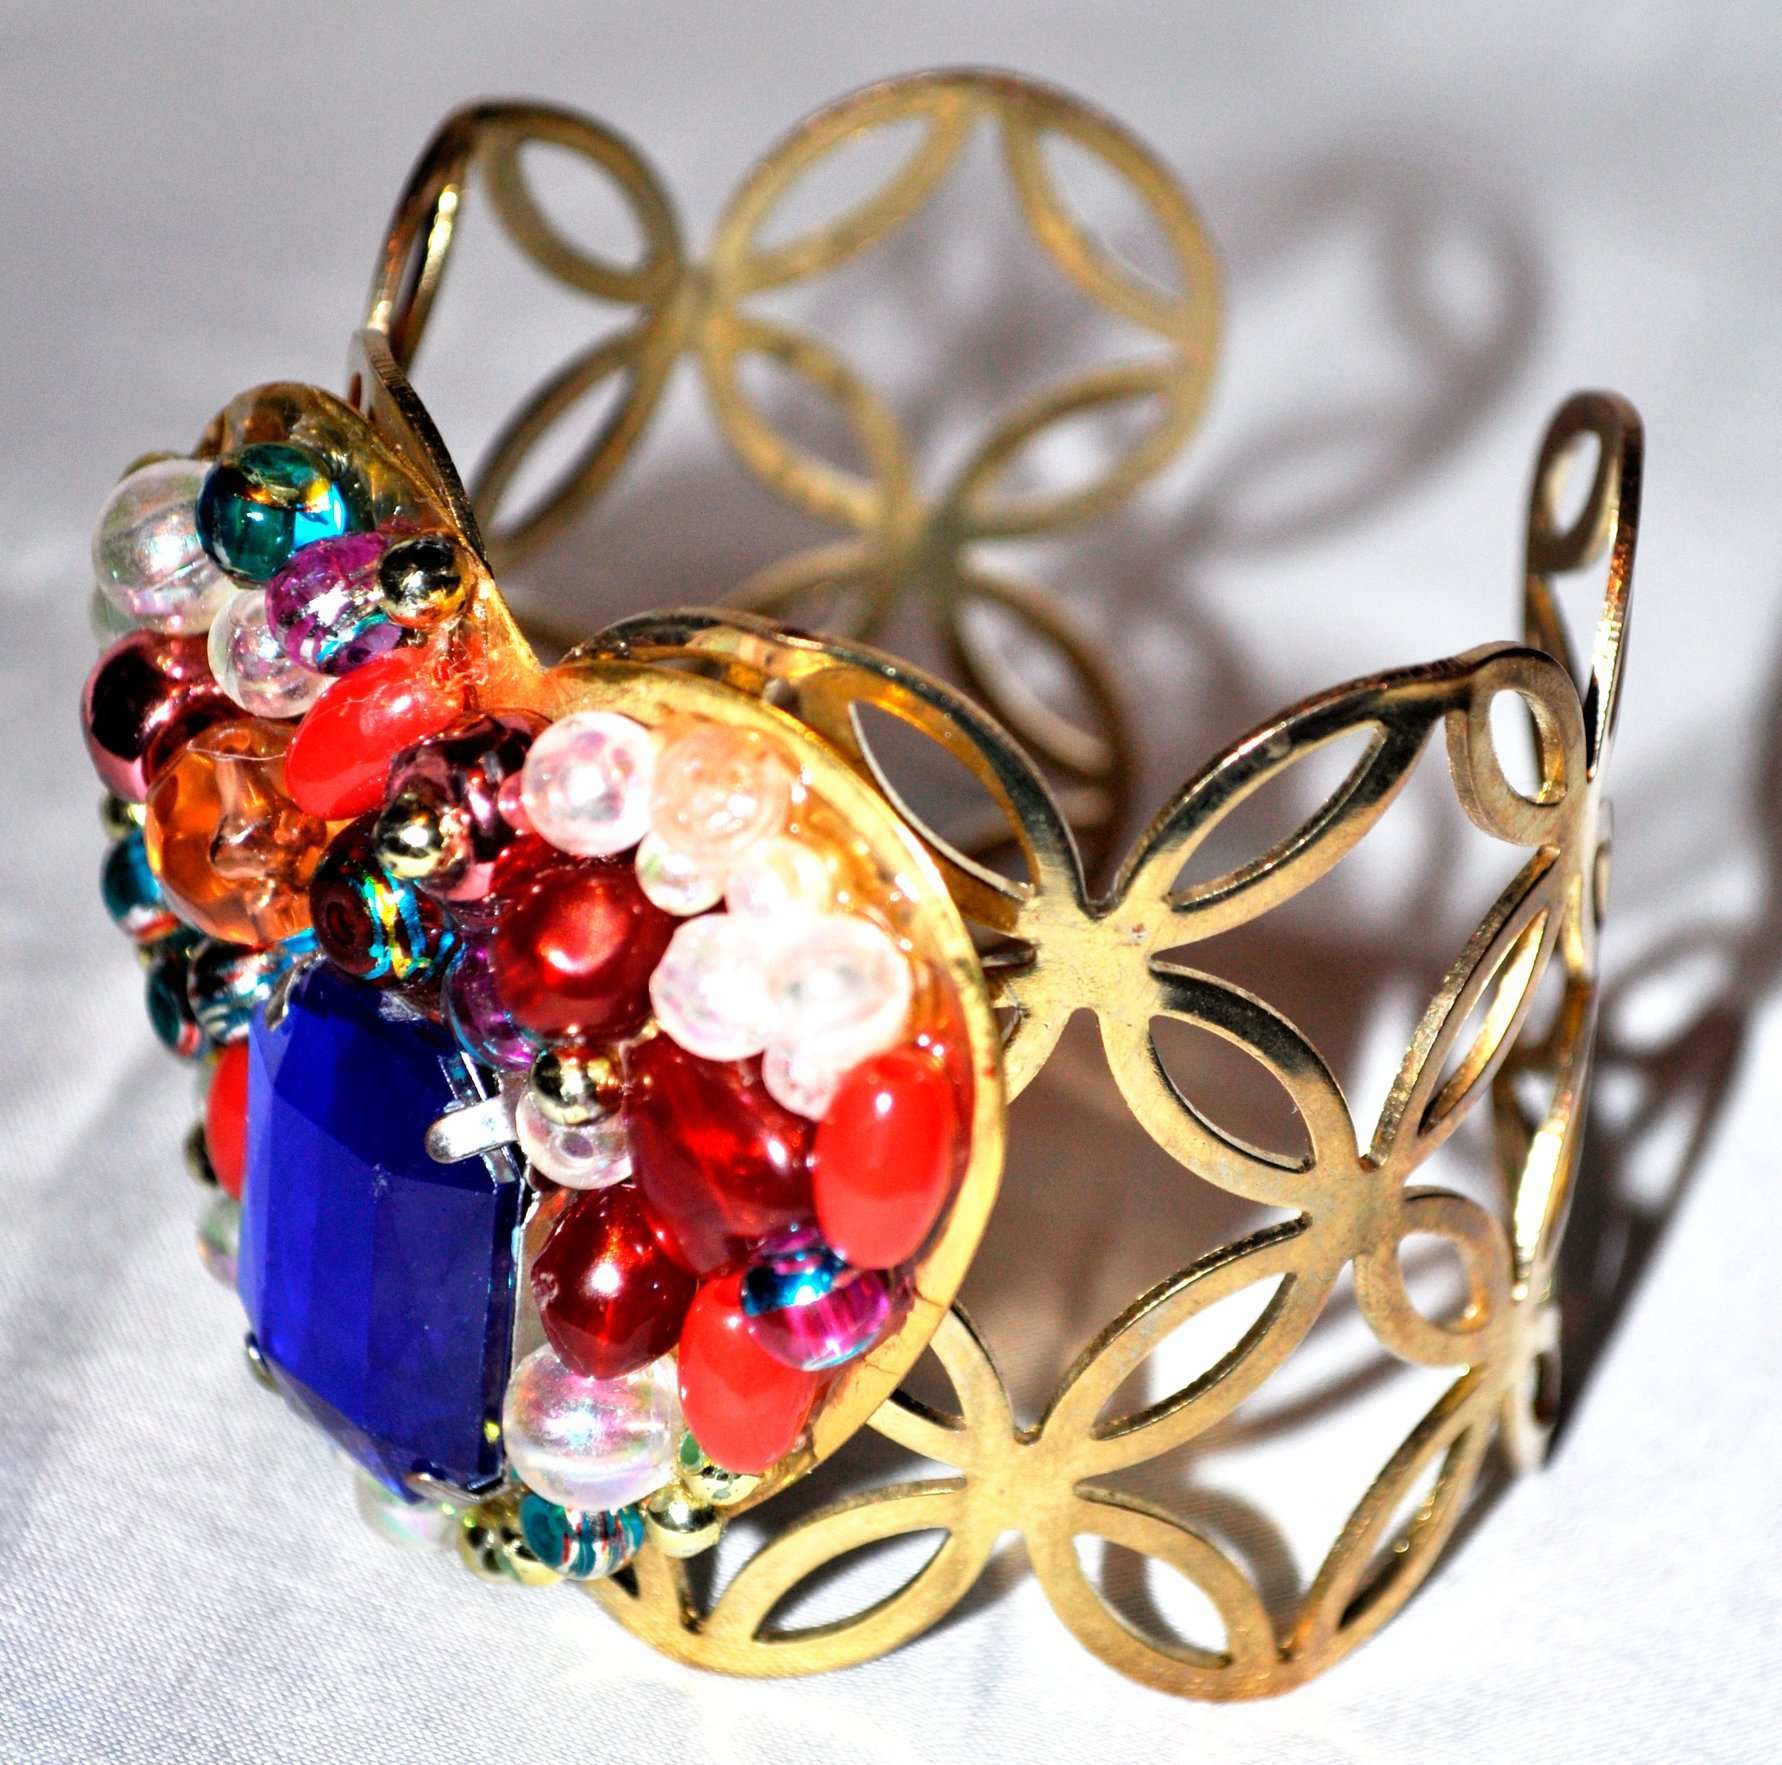 GOLD CUFF WITH BEADED HEART